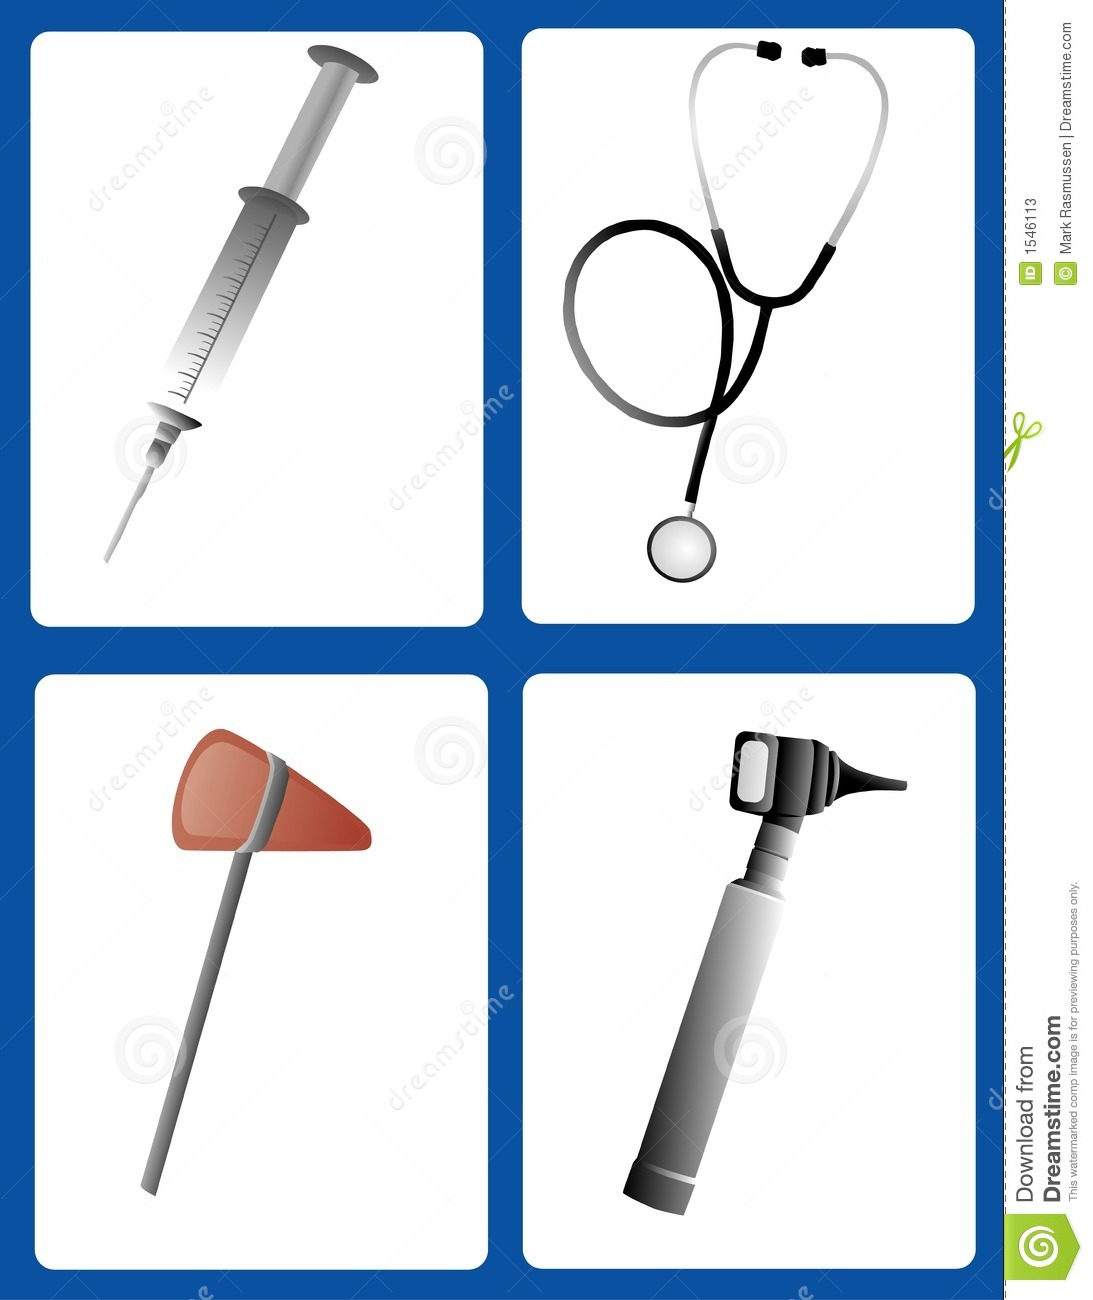 Doctor Tools Clipart   Clipart Panda   Free Clipart Images